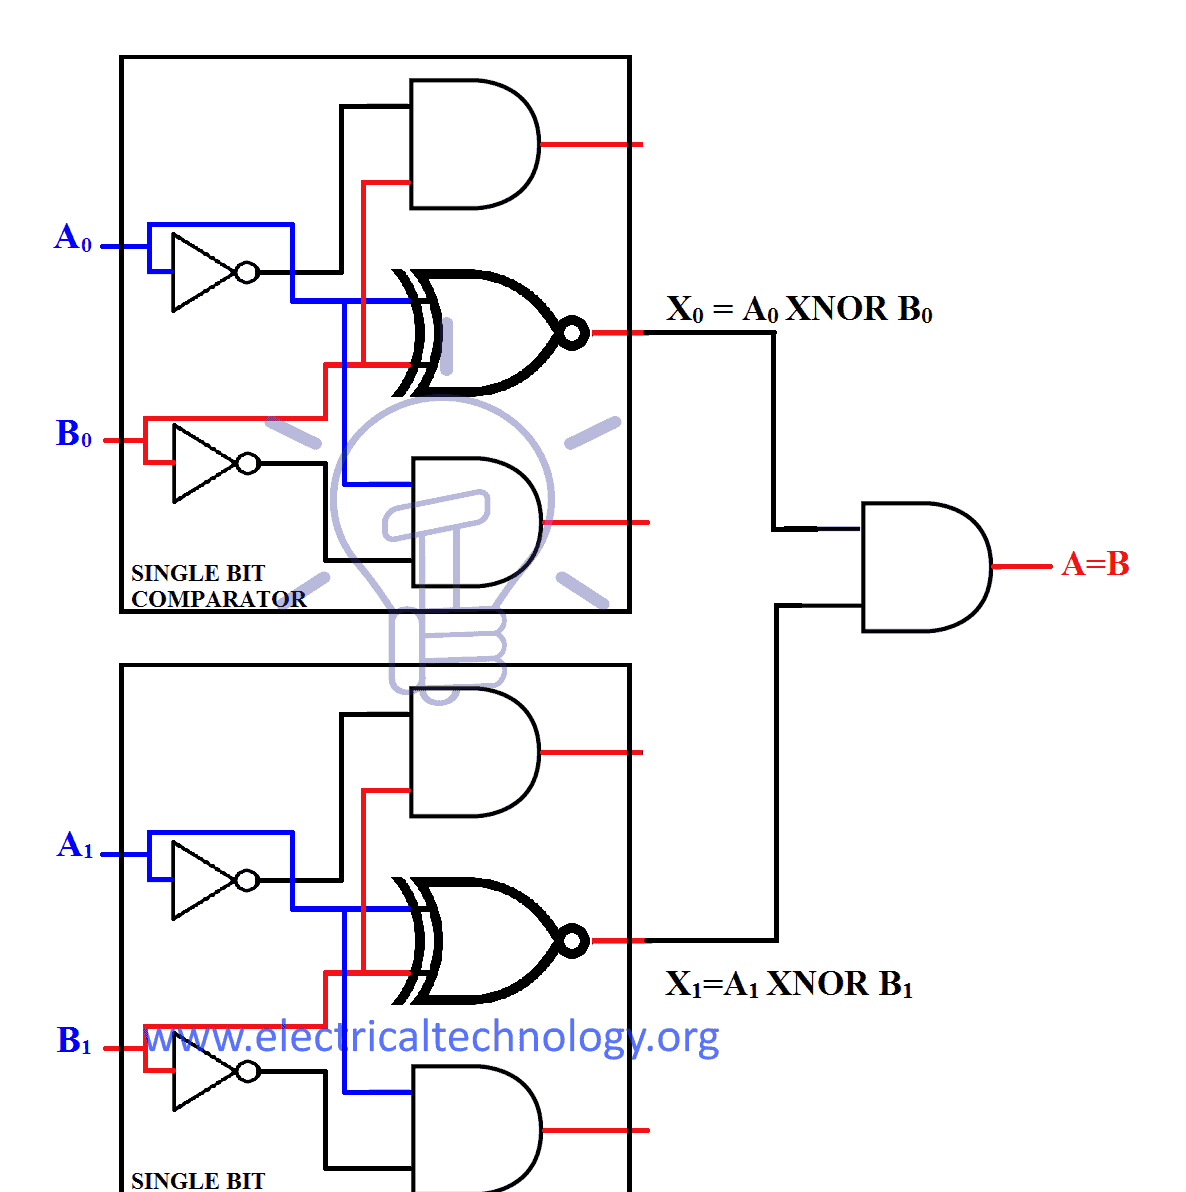 hight resolution of 4 bit comparator logic diagram